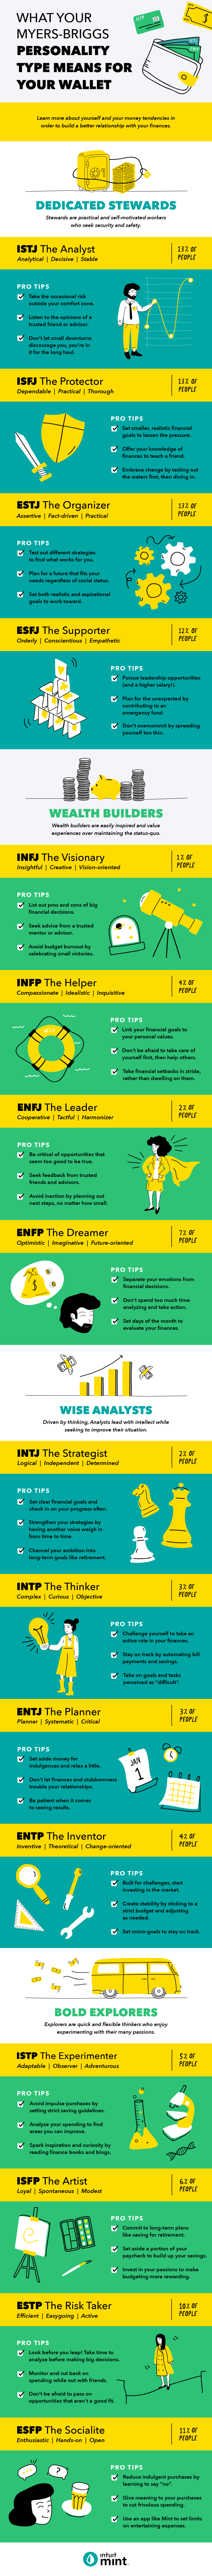 What does your personality with Myers-briggs mean to your wallet? #infographic